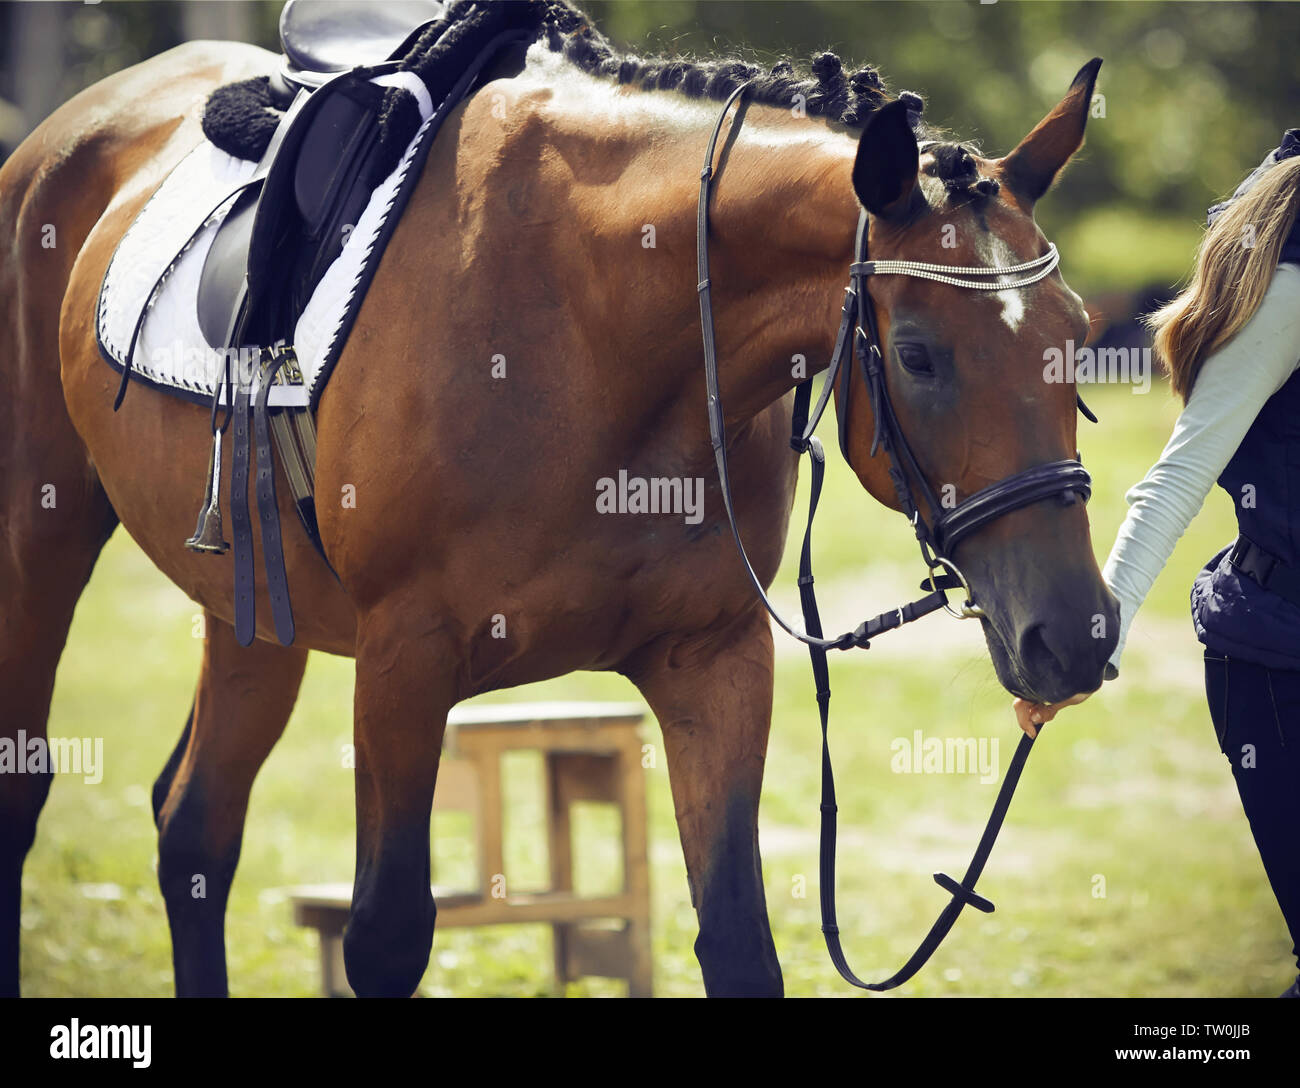 Girl rider leads a bridle Bay horse, dressed in ammunition for dressage and equestrian sports, on a Sunny summer day - Stock Image